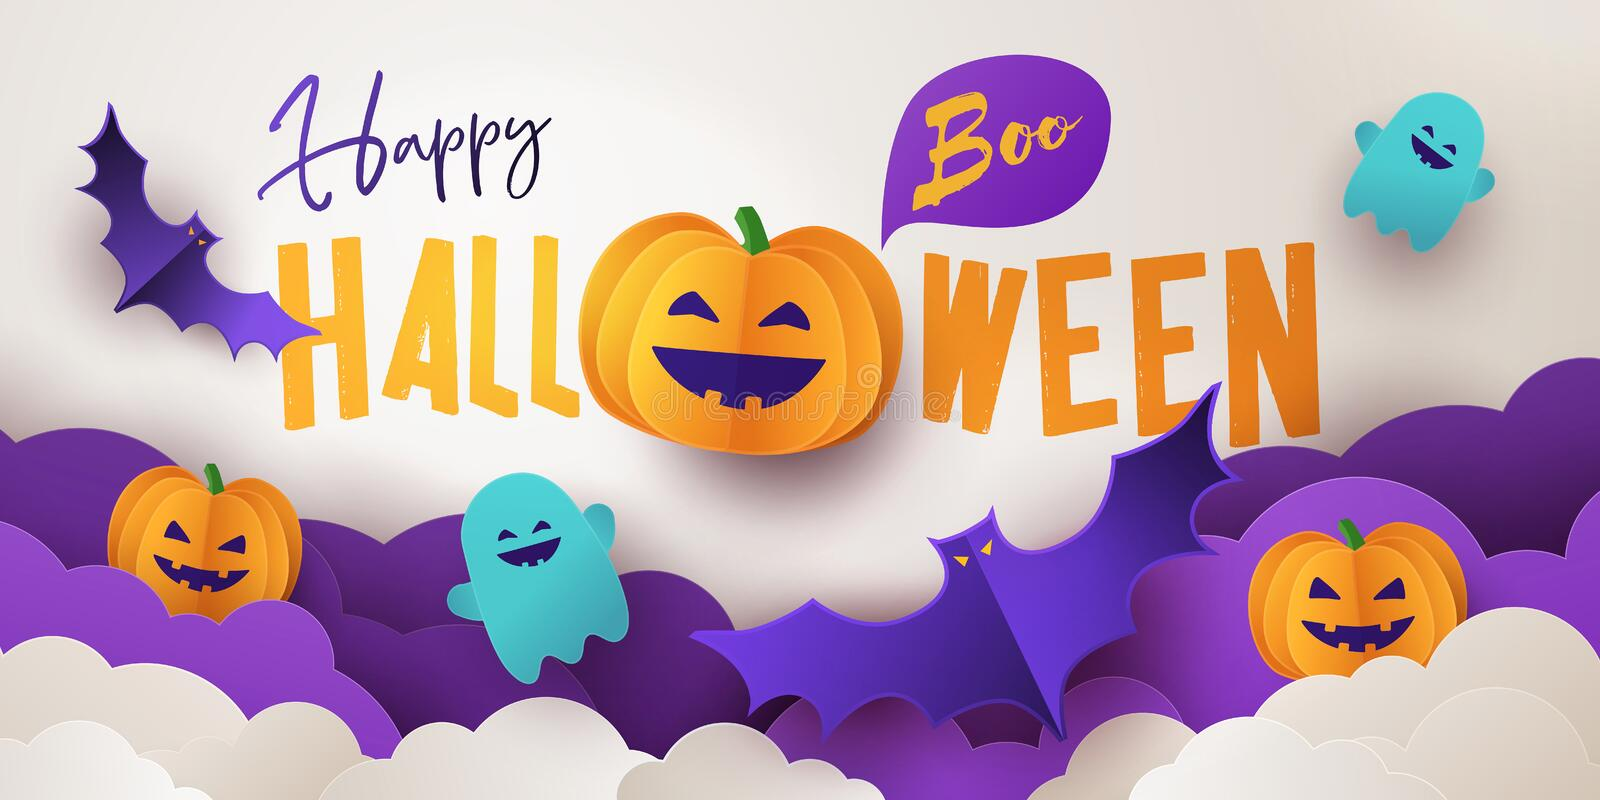 Happy Halloween greeting banner or party invitation with Holiday calligraphy, clouds, pumpkins, bats and cute ghosts stock illustration